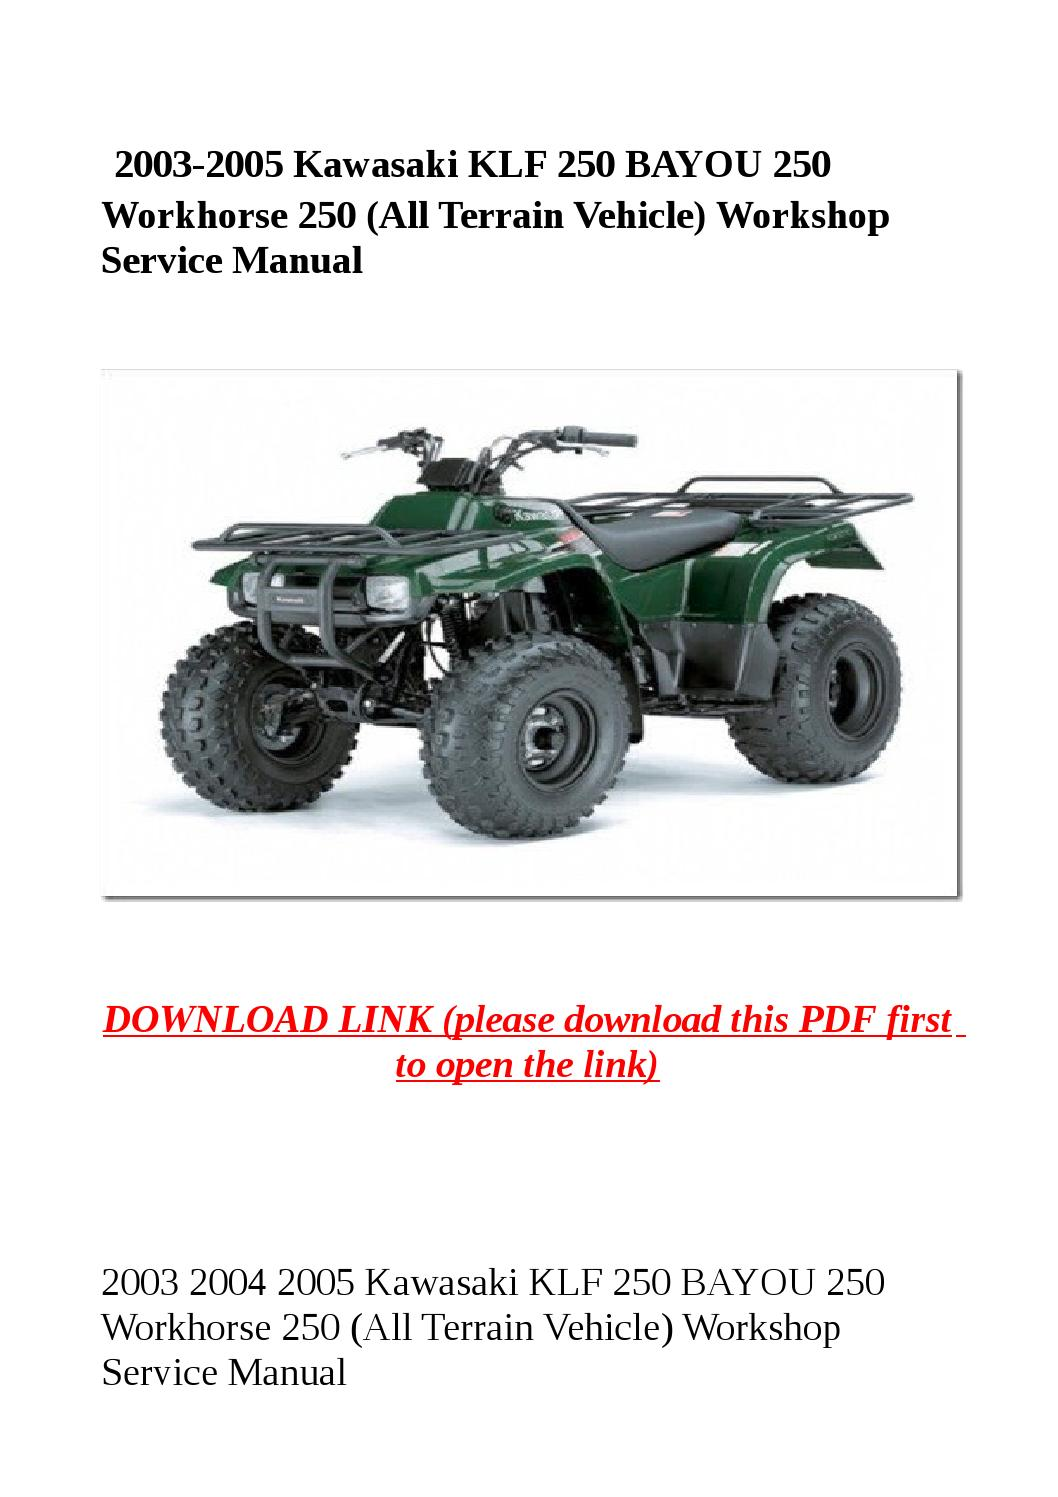 2003 2005 kawasaki klf 250 bayou 250 workhorse 250 (all terrain vehicle) workshop  service manual by yghj - issuu